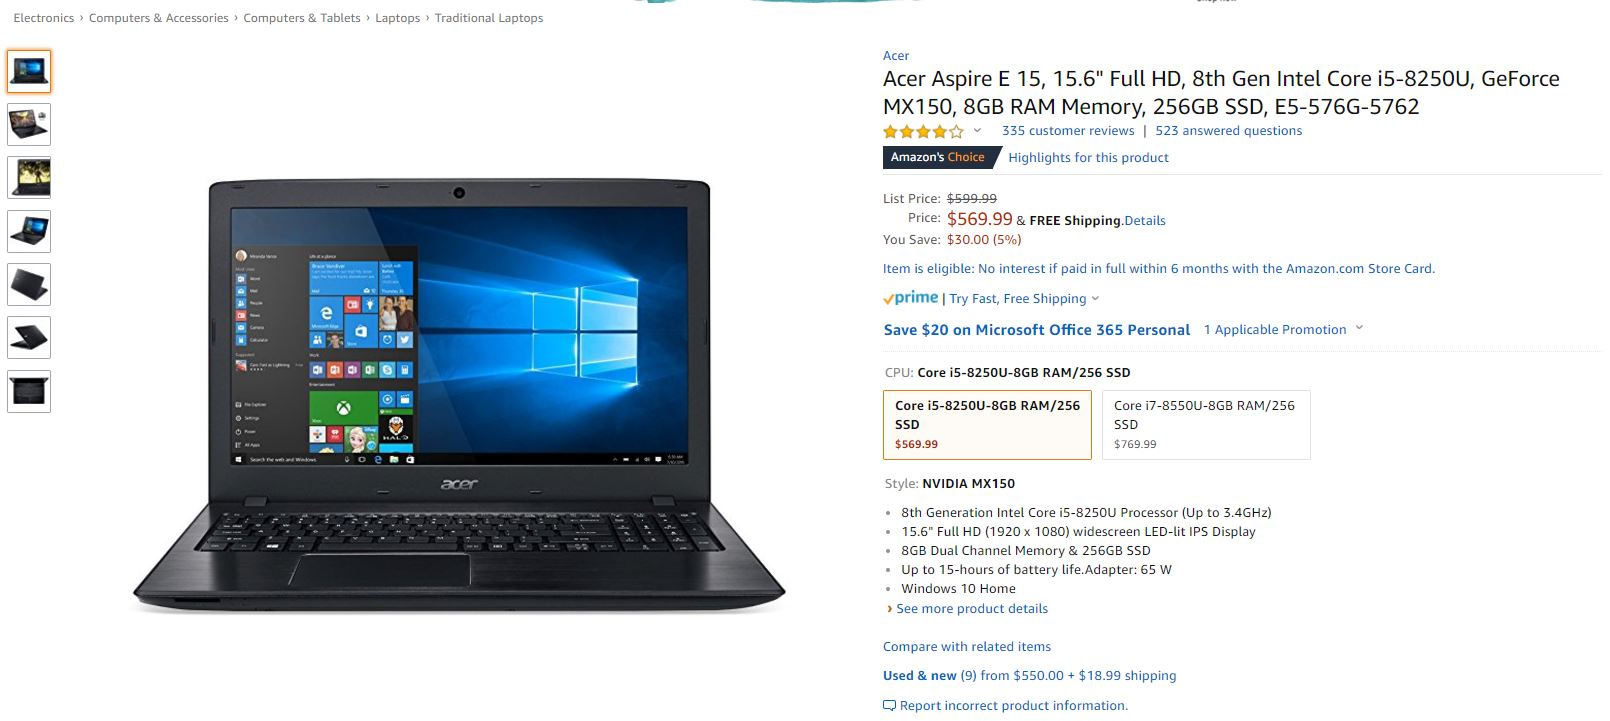 The Acer Aspire E 15 with a Core i5-8520U, MX150, and 256 GB